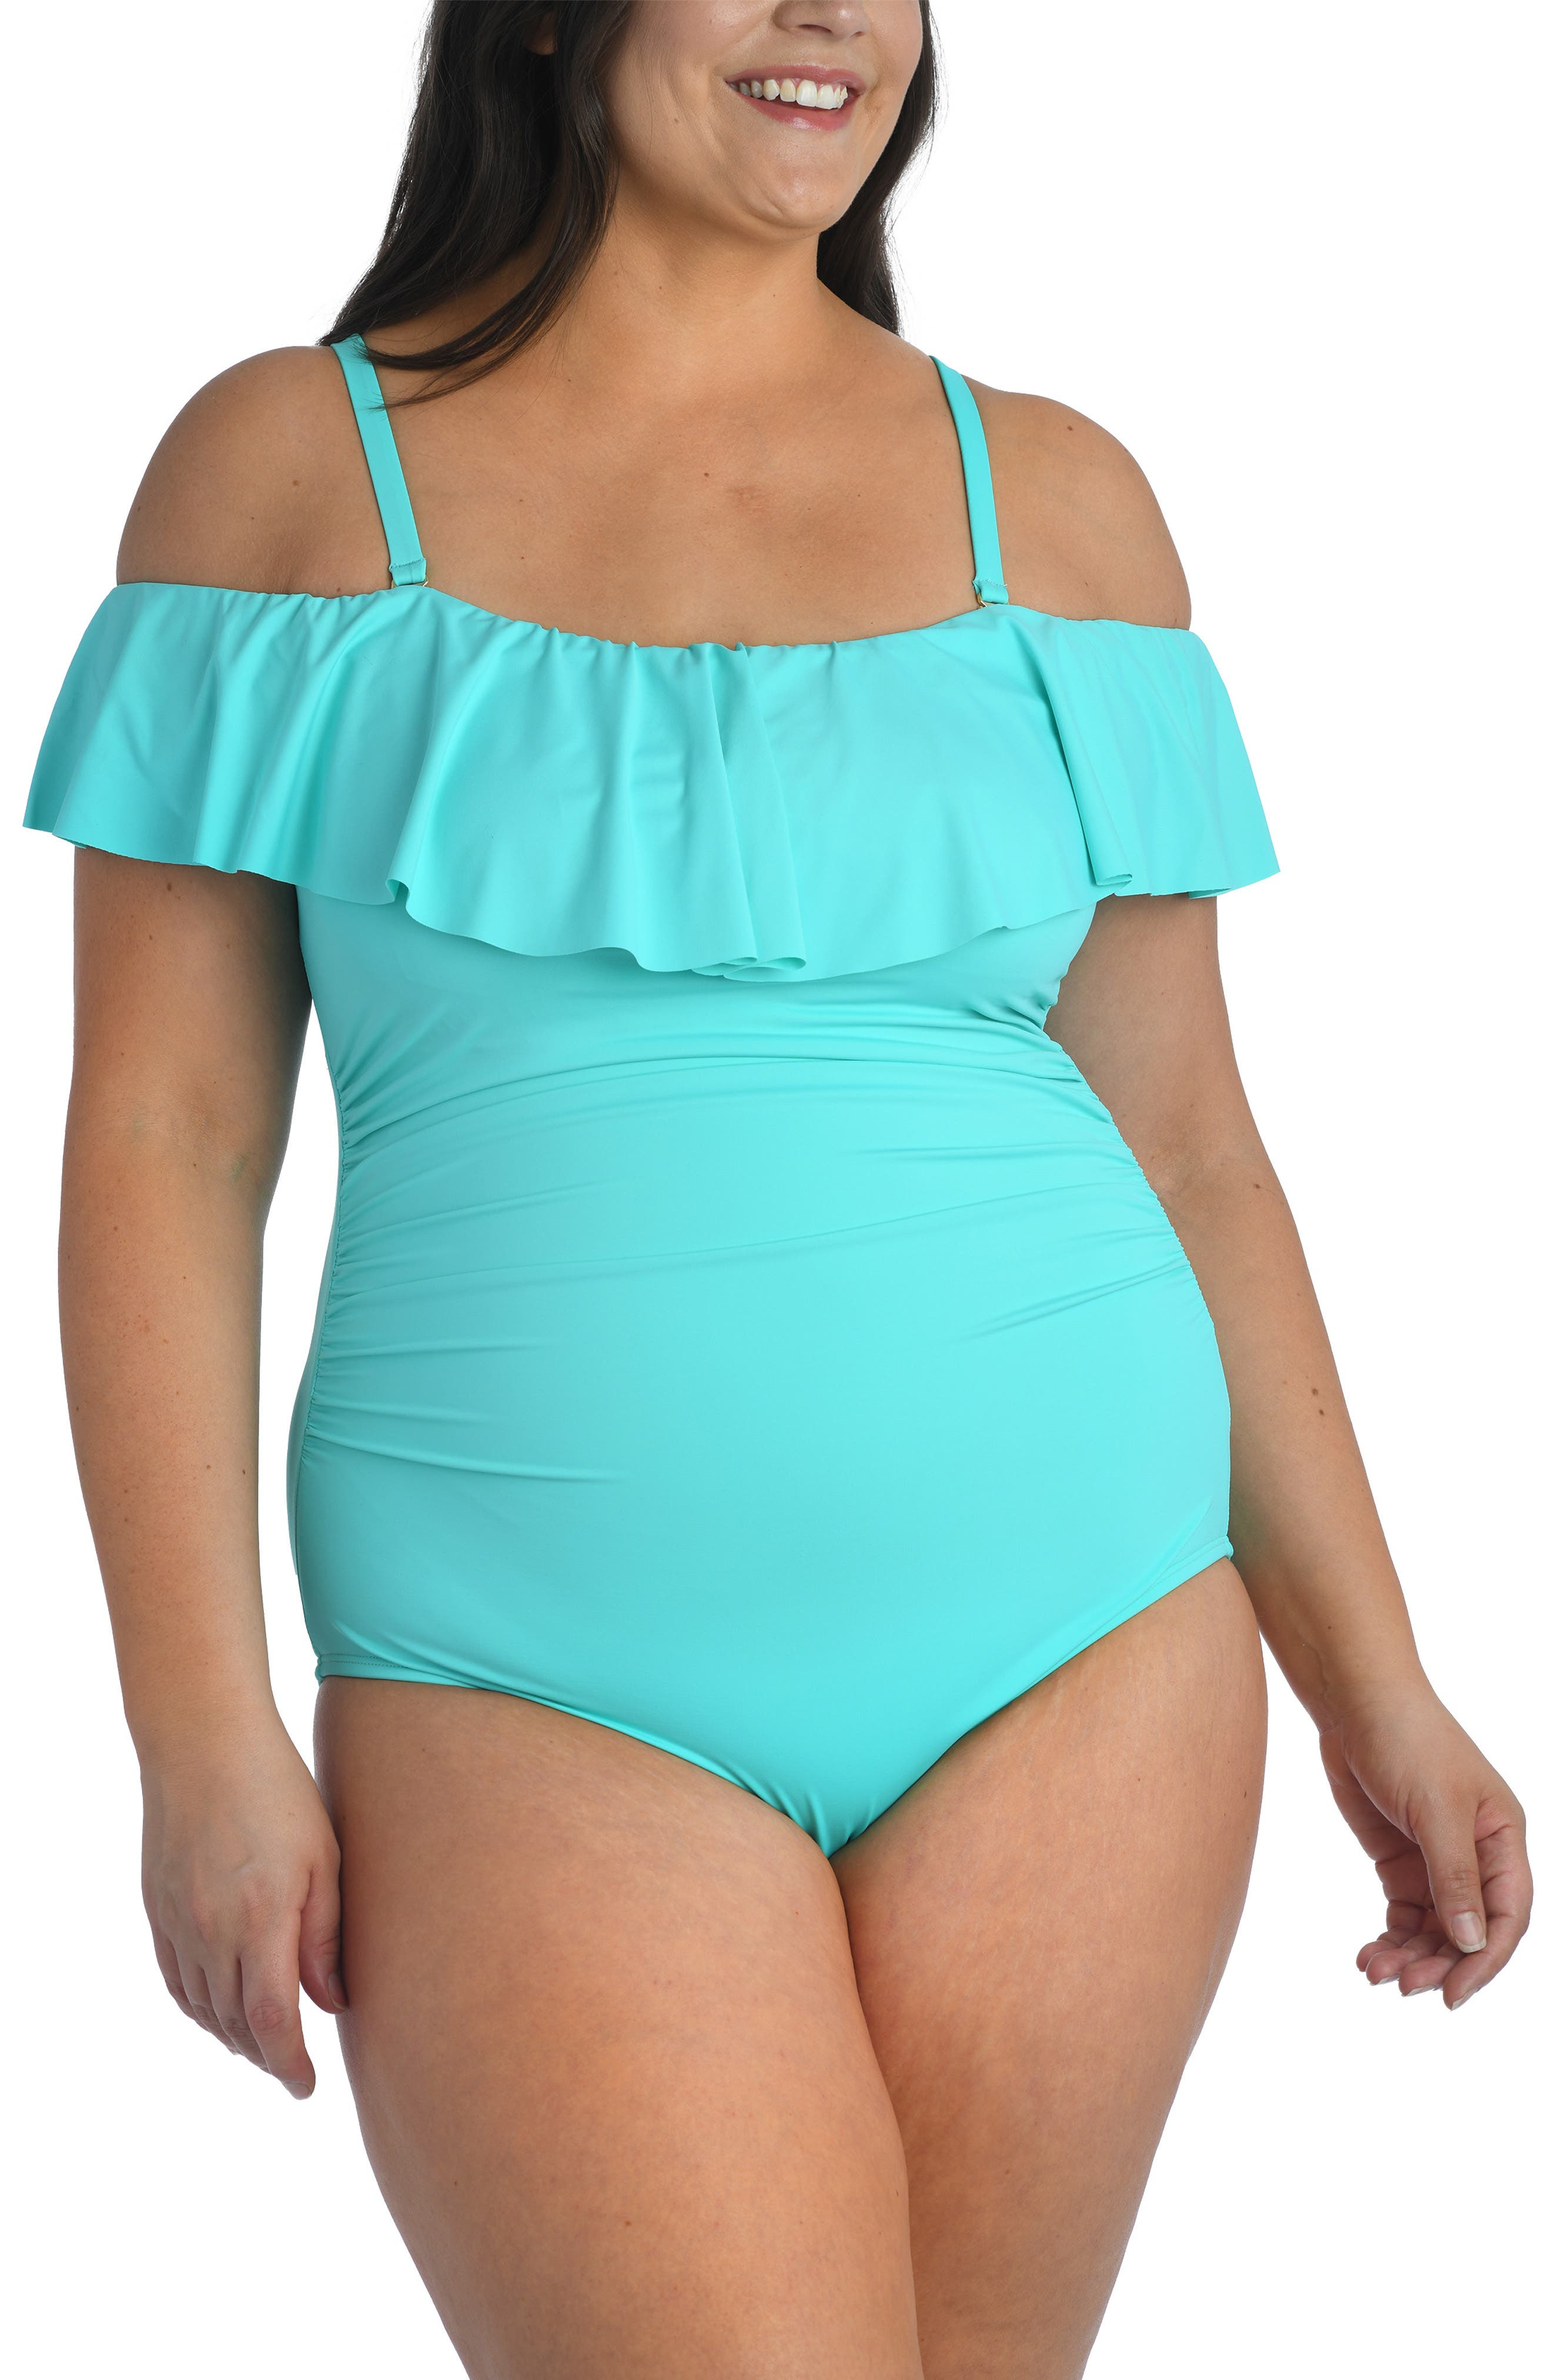 1950s Style Clothing & Fashion Plus Size Womens La Blanca Off The Shoulder One-Piece Swimsuit Size 20W - Bluegreen $124.00 AT vintagedancer.com